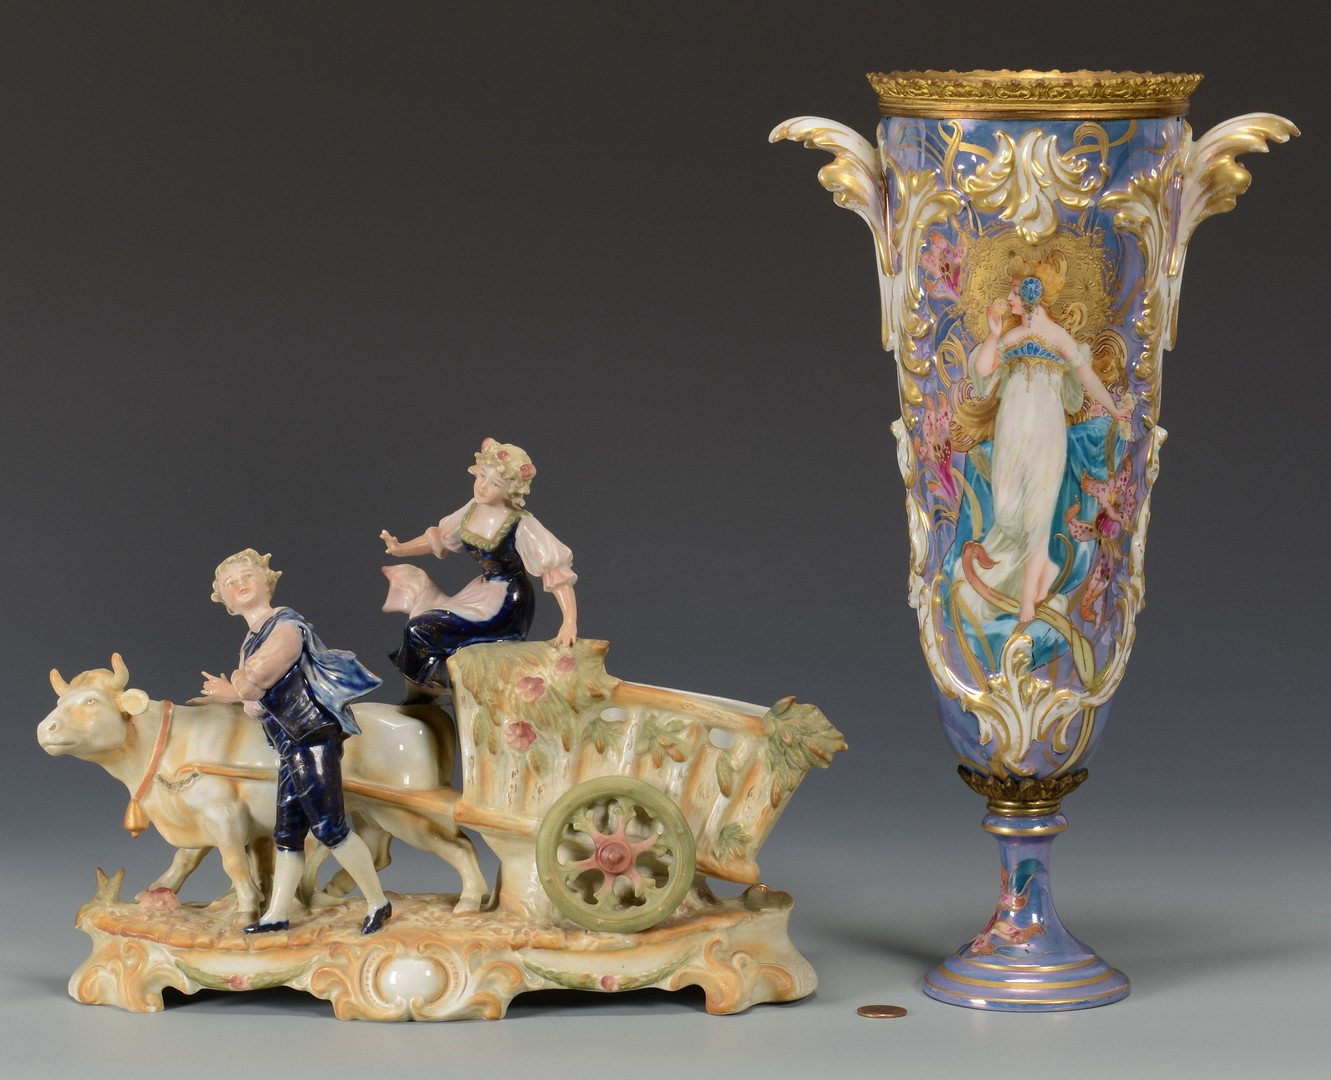 Lot 616: Sevres style Art Nouveau Vase and Figural